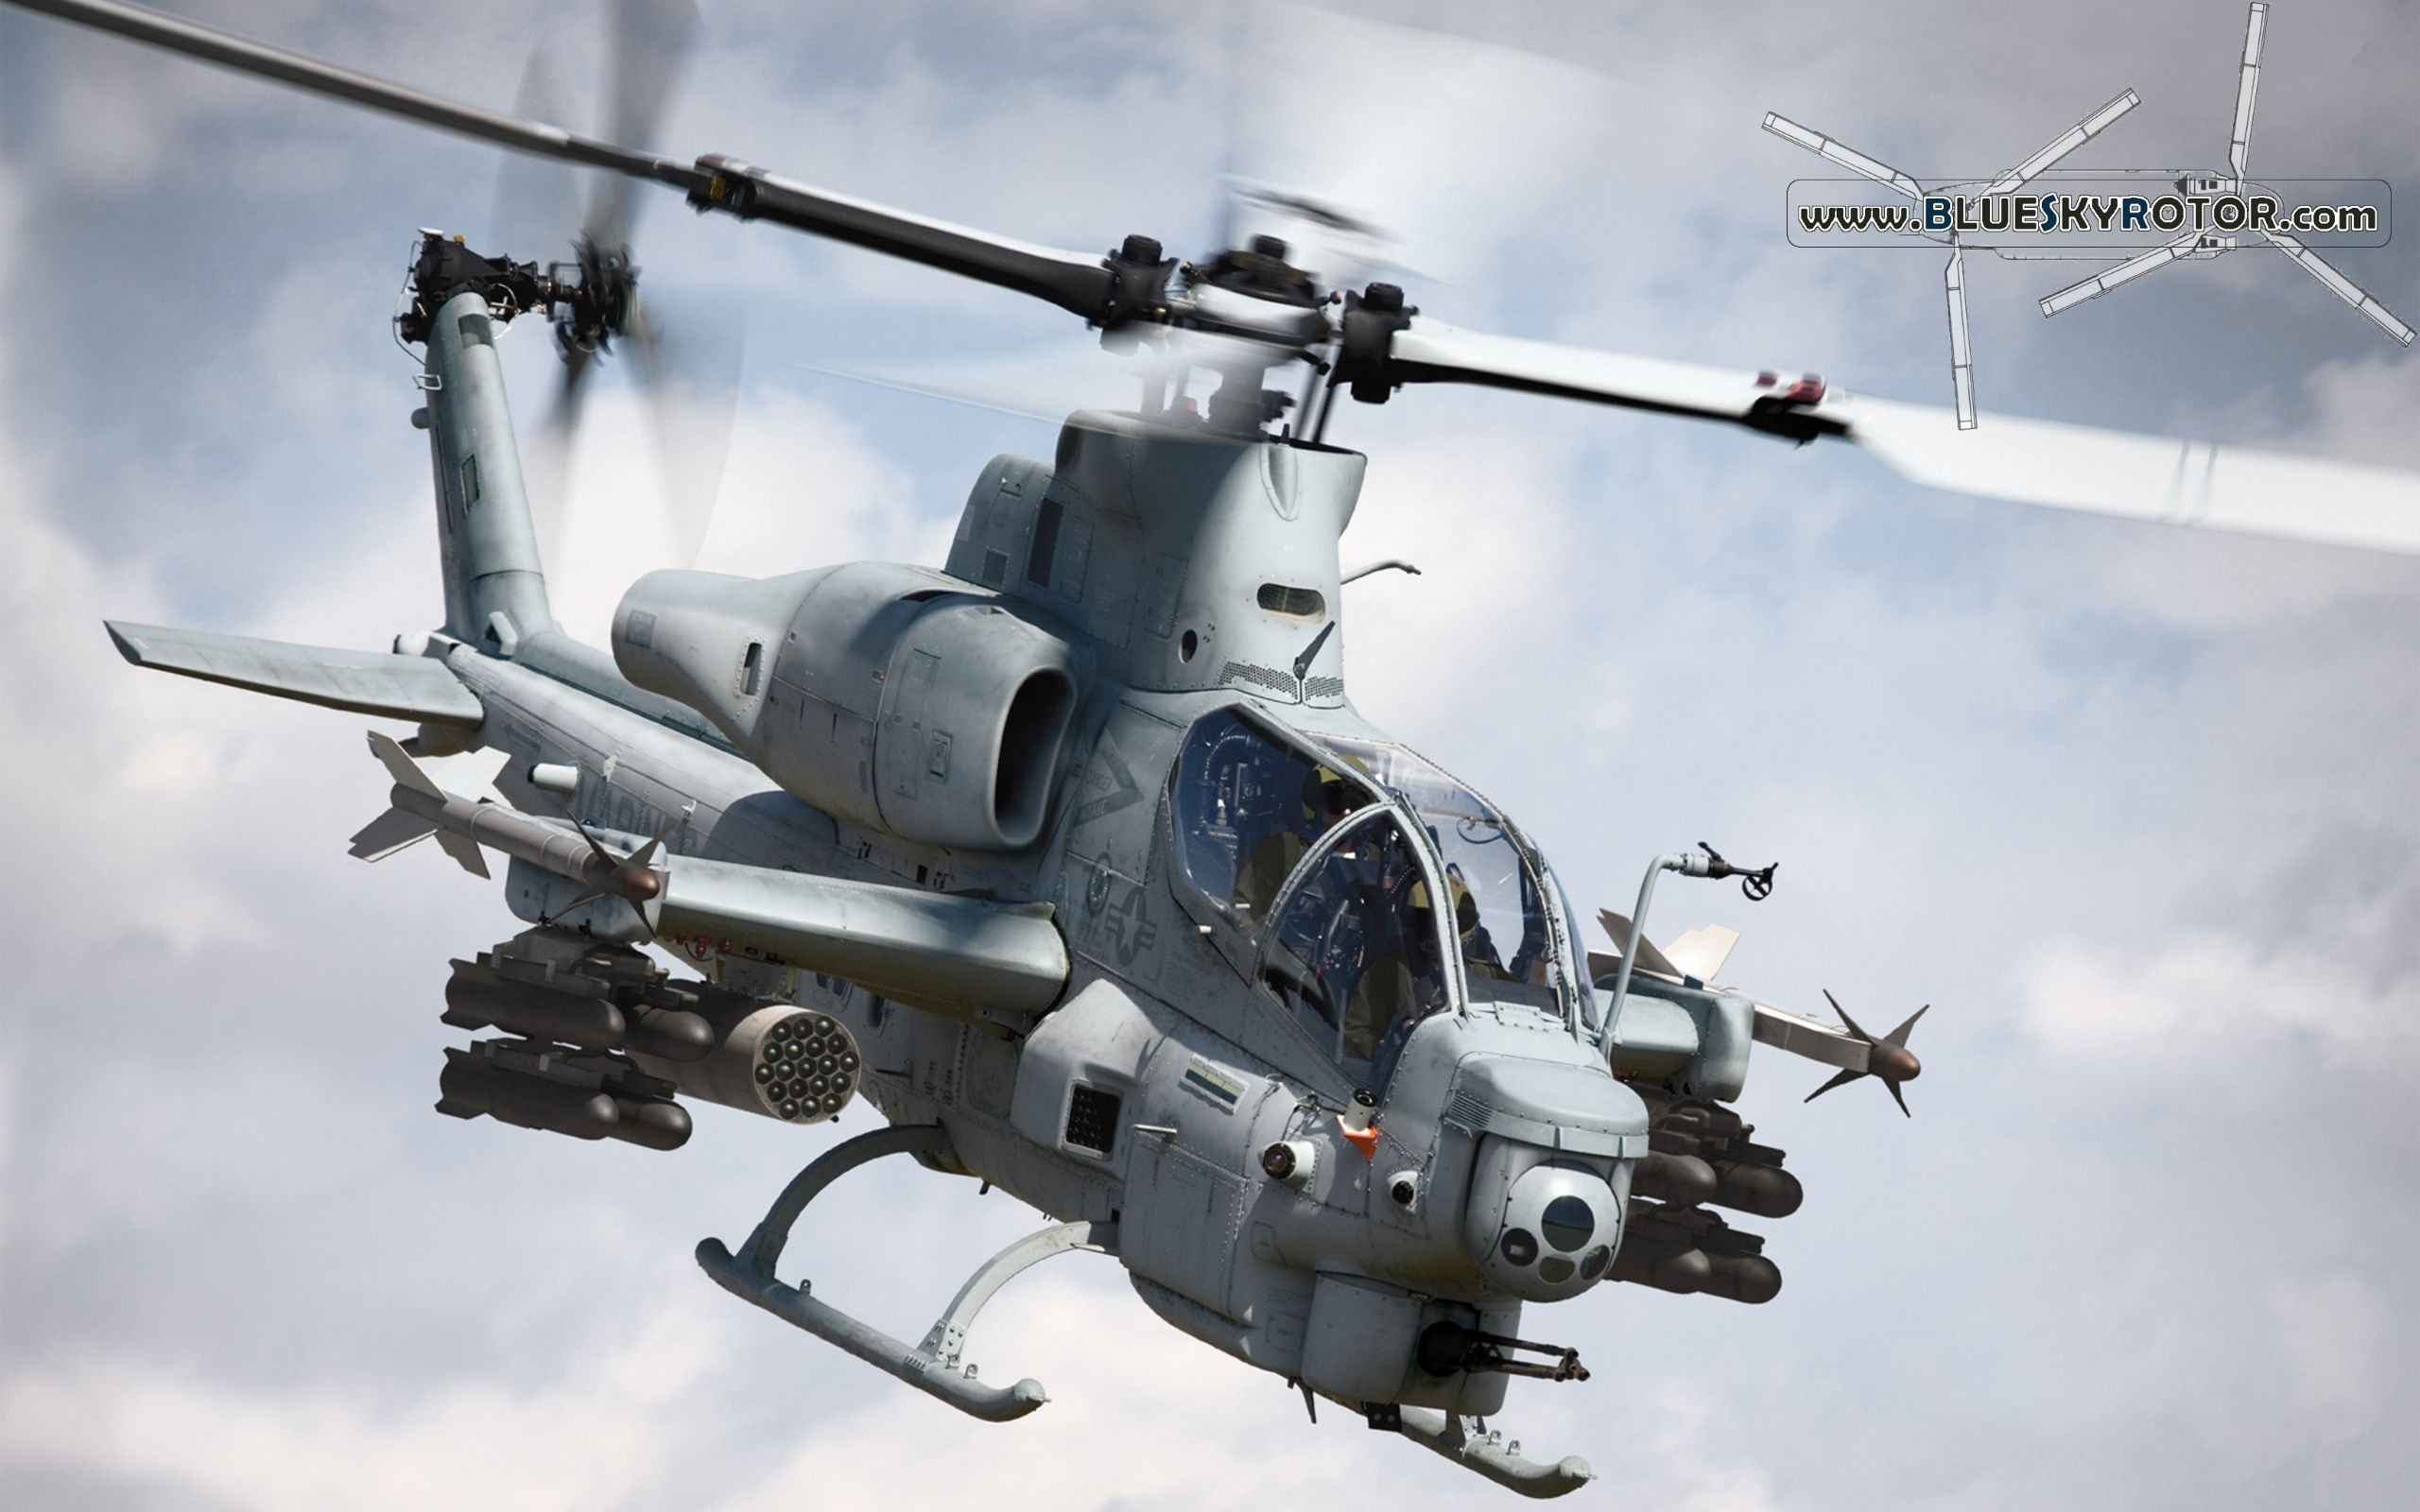 tandem rotor helicopter with Attack Helicopters Part 1 on List of united states military helicopters also Coaxial Rotor Helicopters besides File Tiltrotor research aircraft hovering   GPN 2002 000192 likewise 5 January 1956 likewise Los Mejores Helicopteros De Ataque Son Rusos.